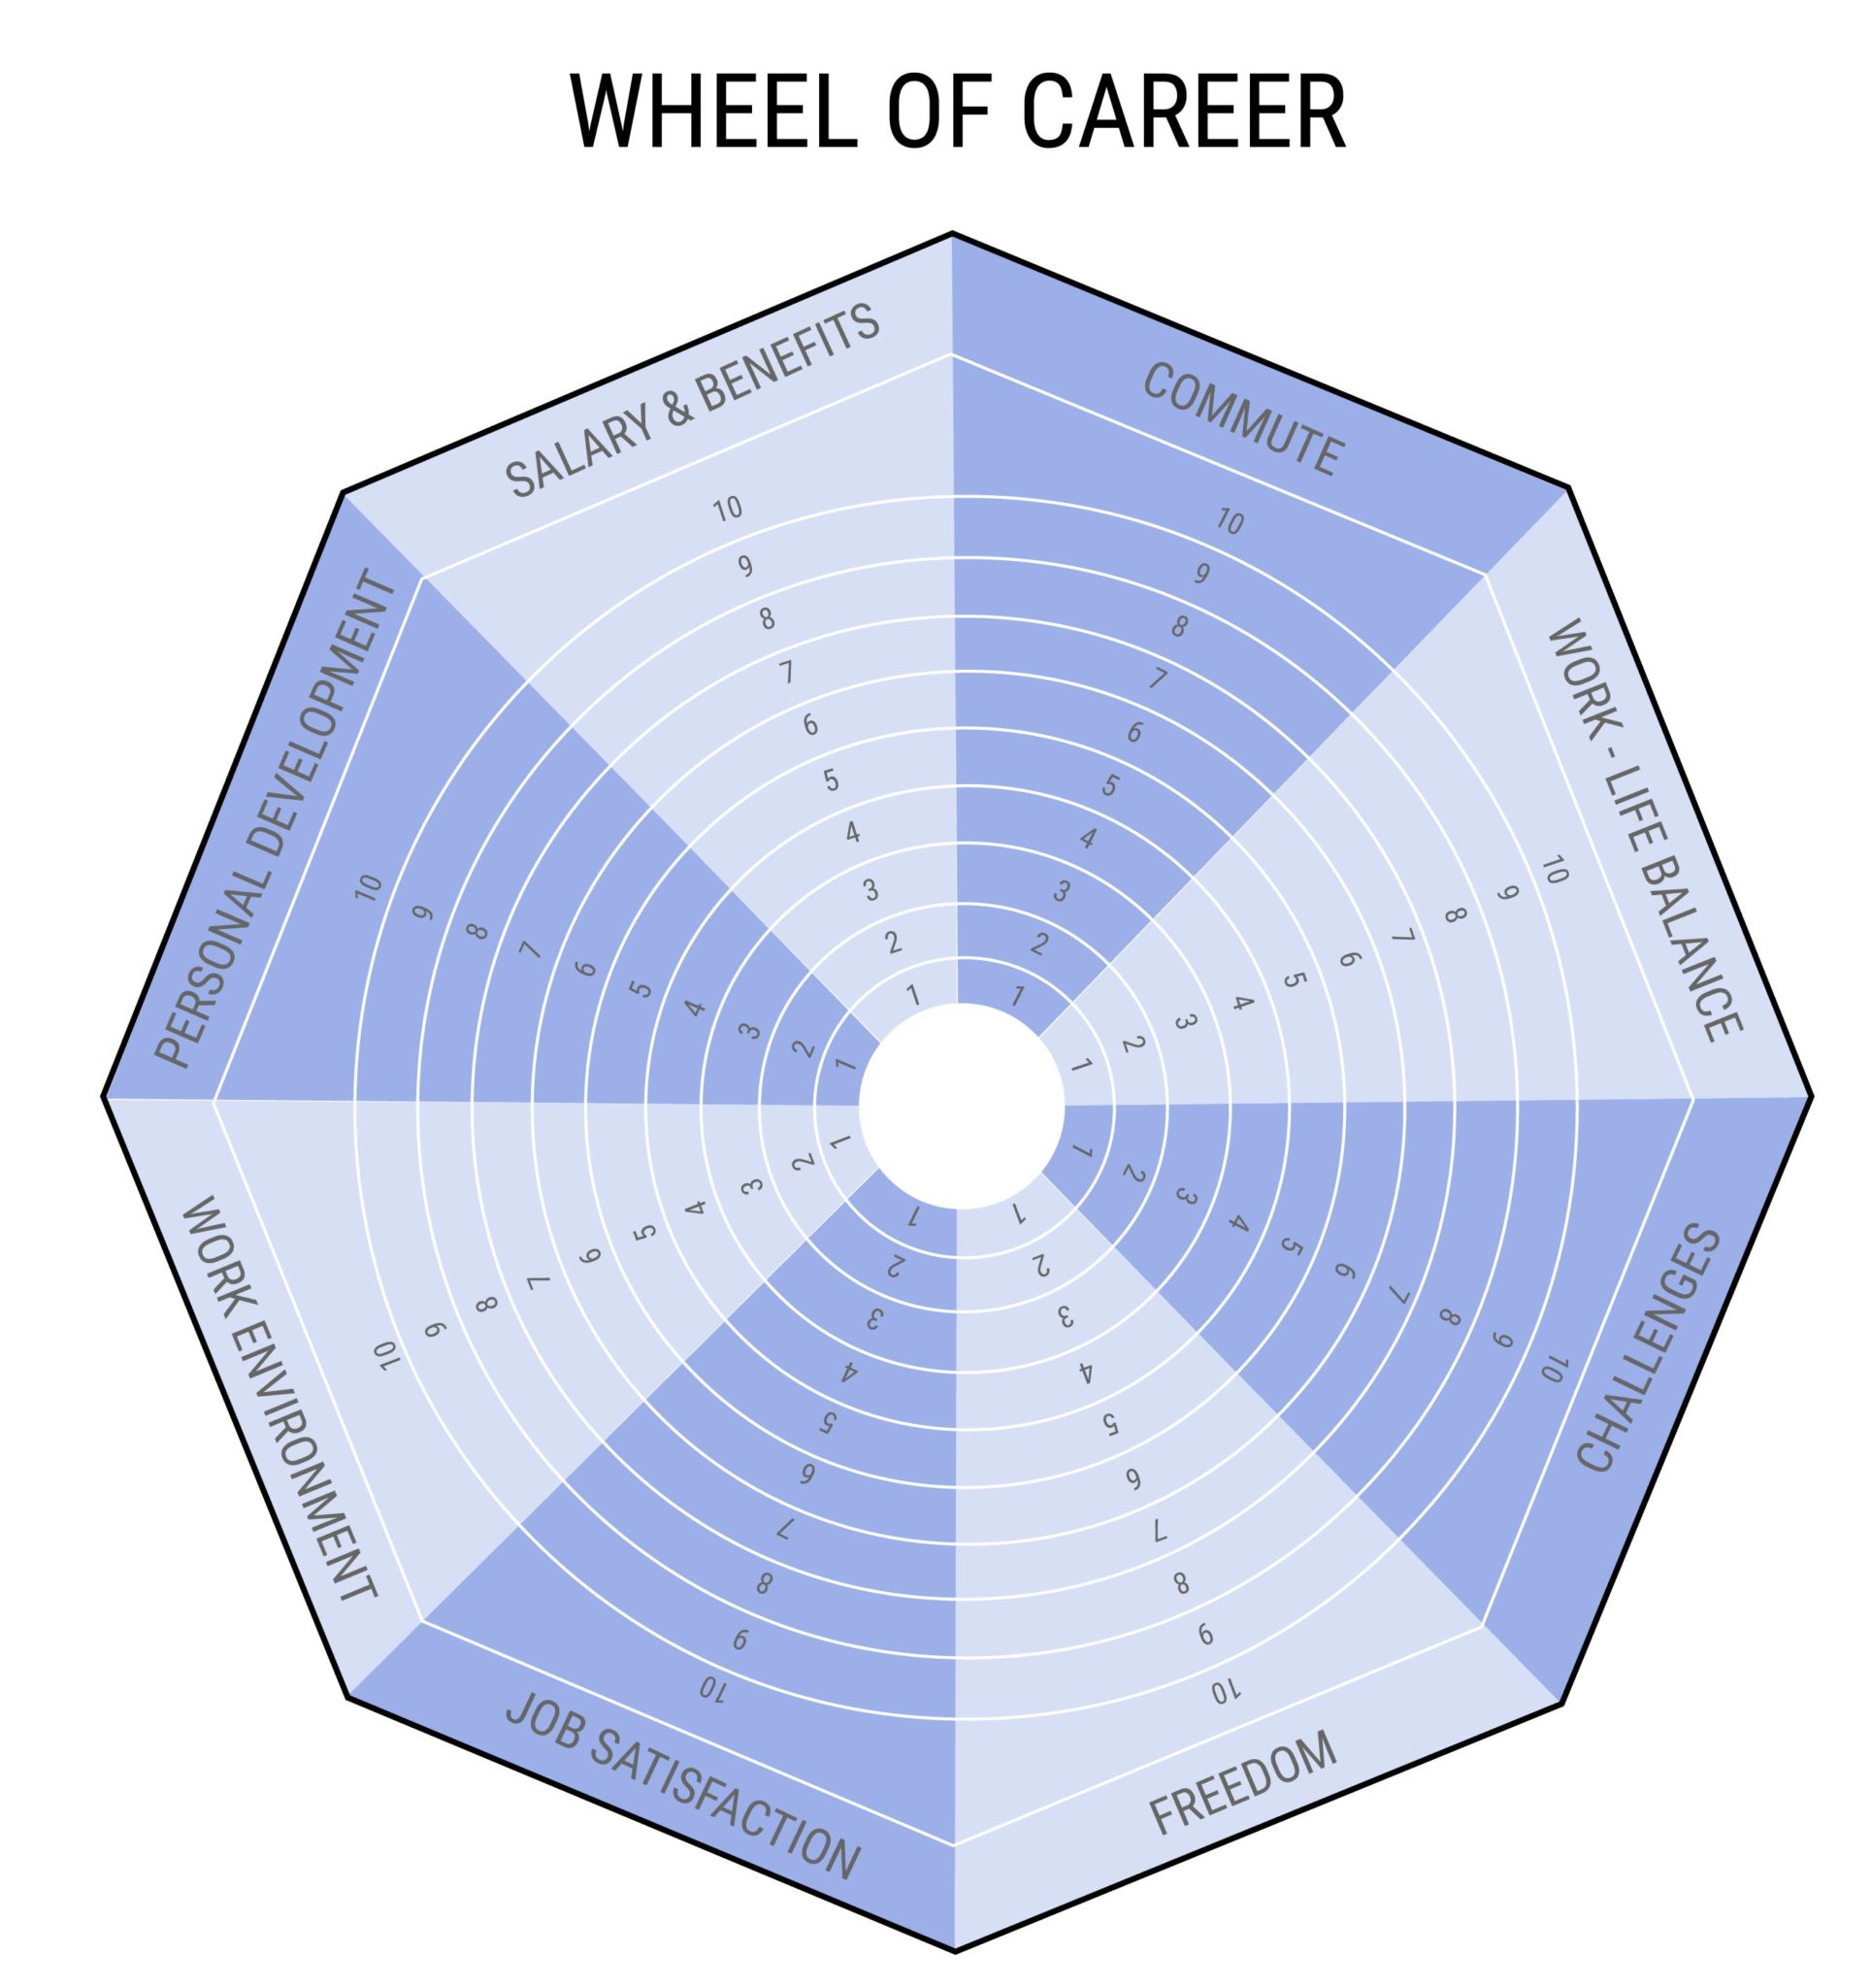 WHEEL OF CAREER